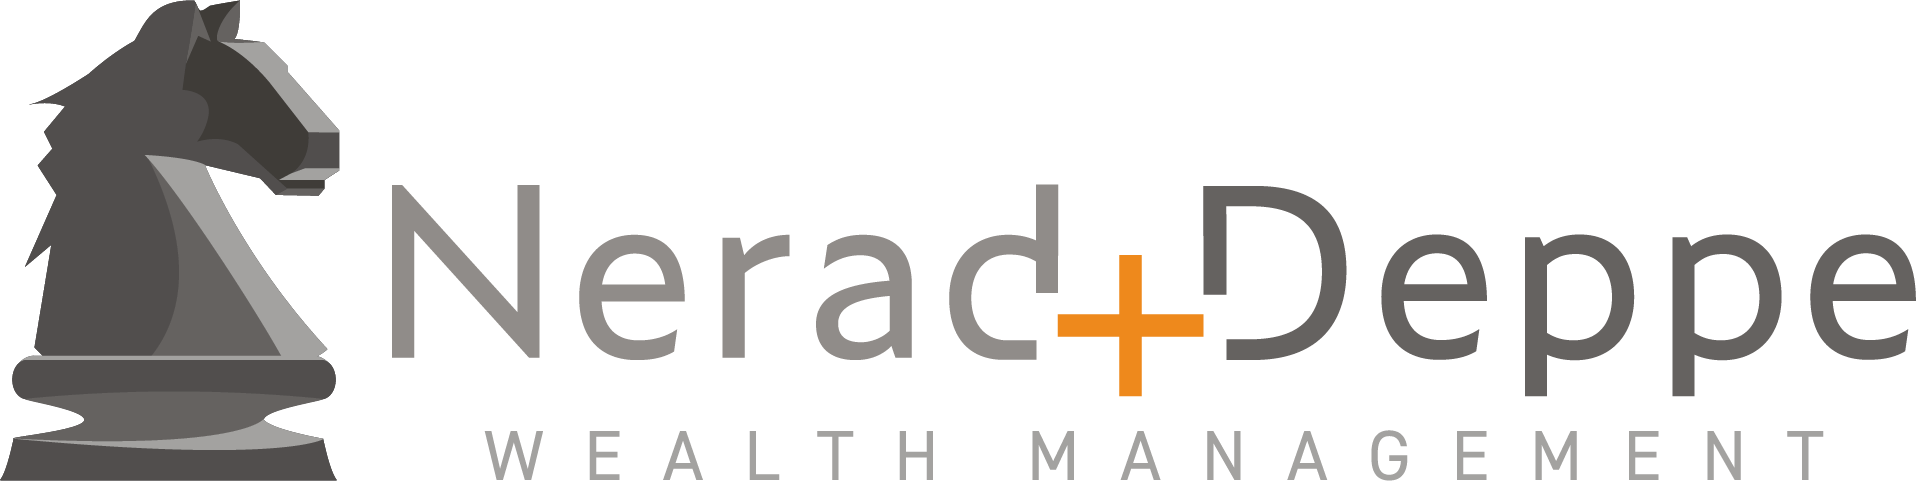 Nerad + Deppe Wealth Management